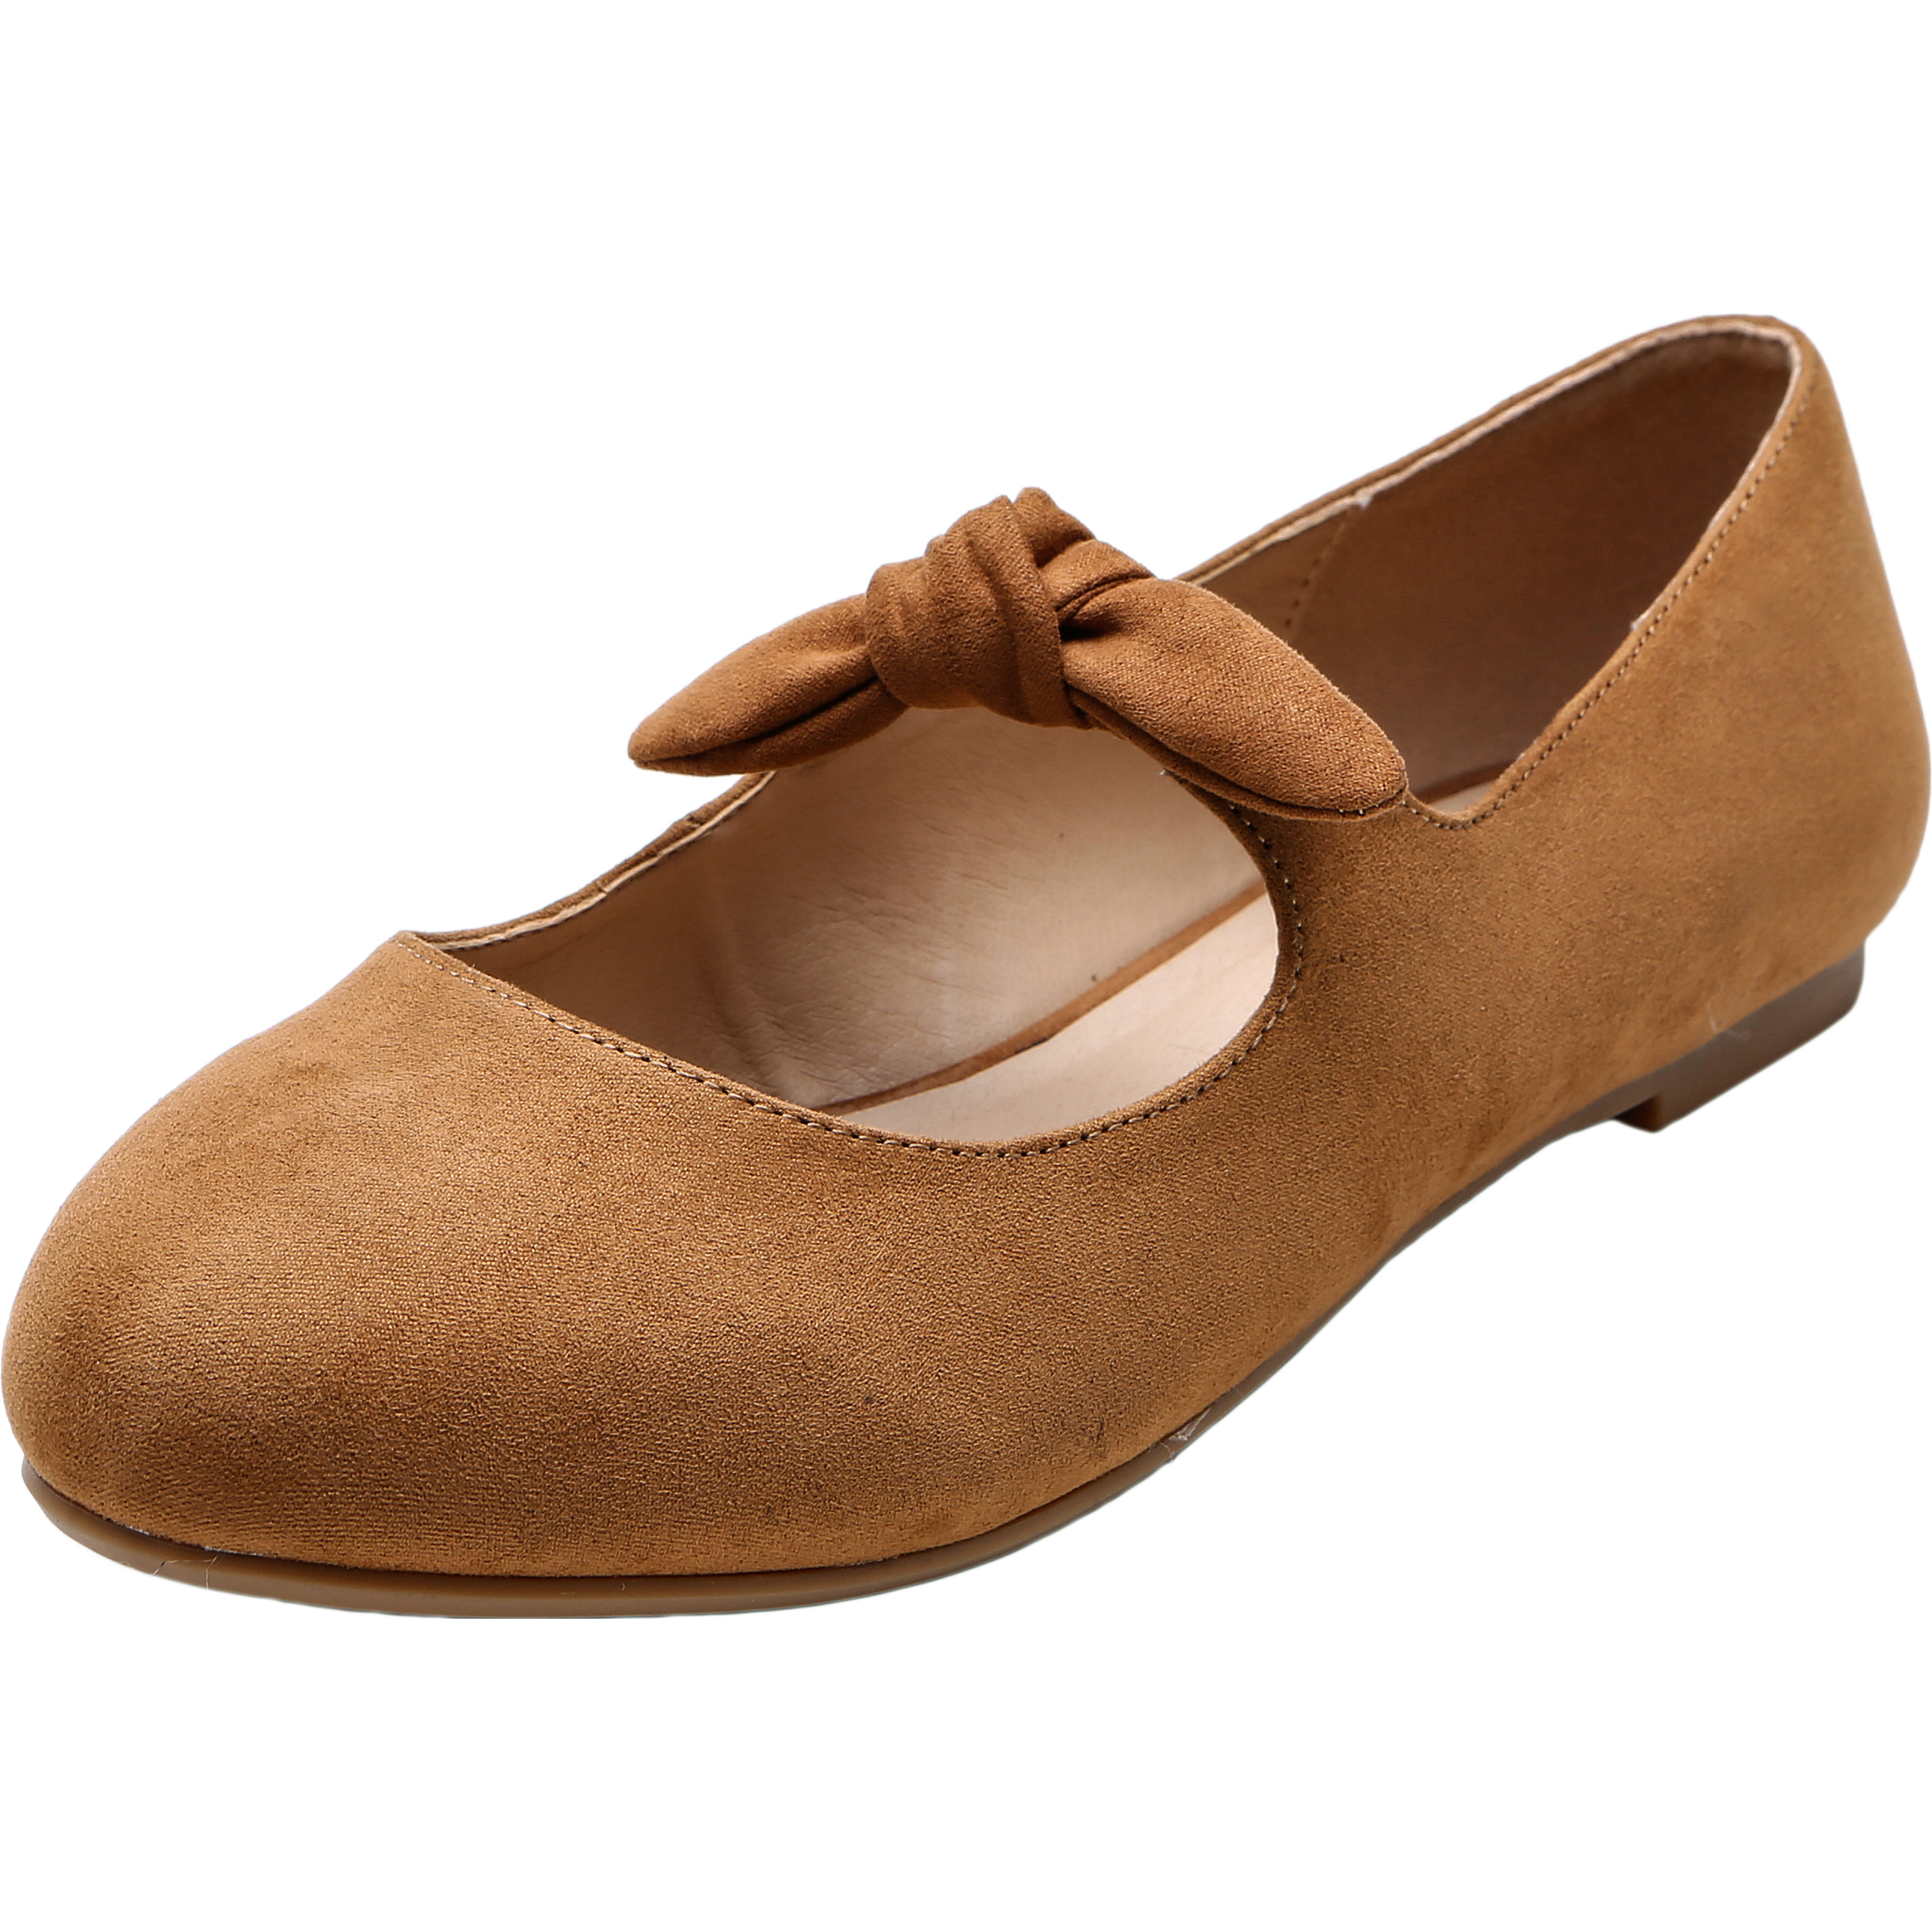 dc53b4dd5e40 US  29.99 - Women s Wide Width Flat Shoes - Comfortable Classic Pointy Toe  Slip On Bow Elastic Band Ballet Flat. - www.luoika-us.com